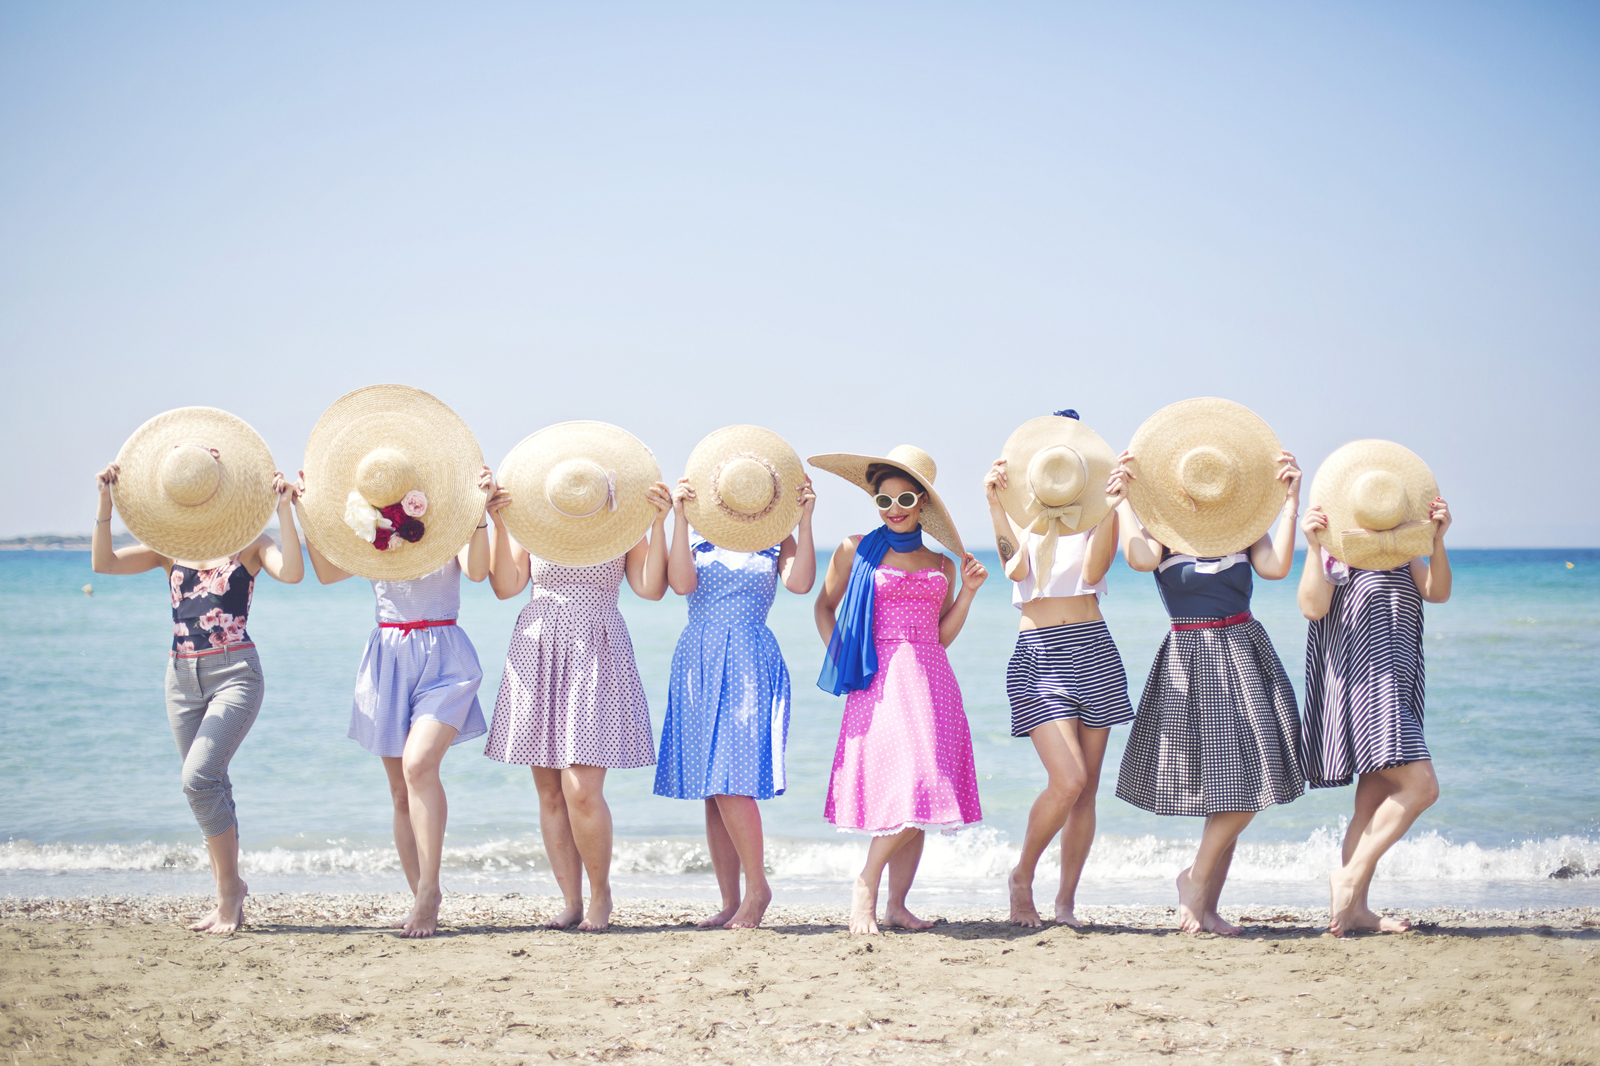 vintage bachelorette party στην παραλία